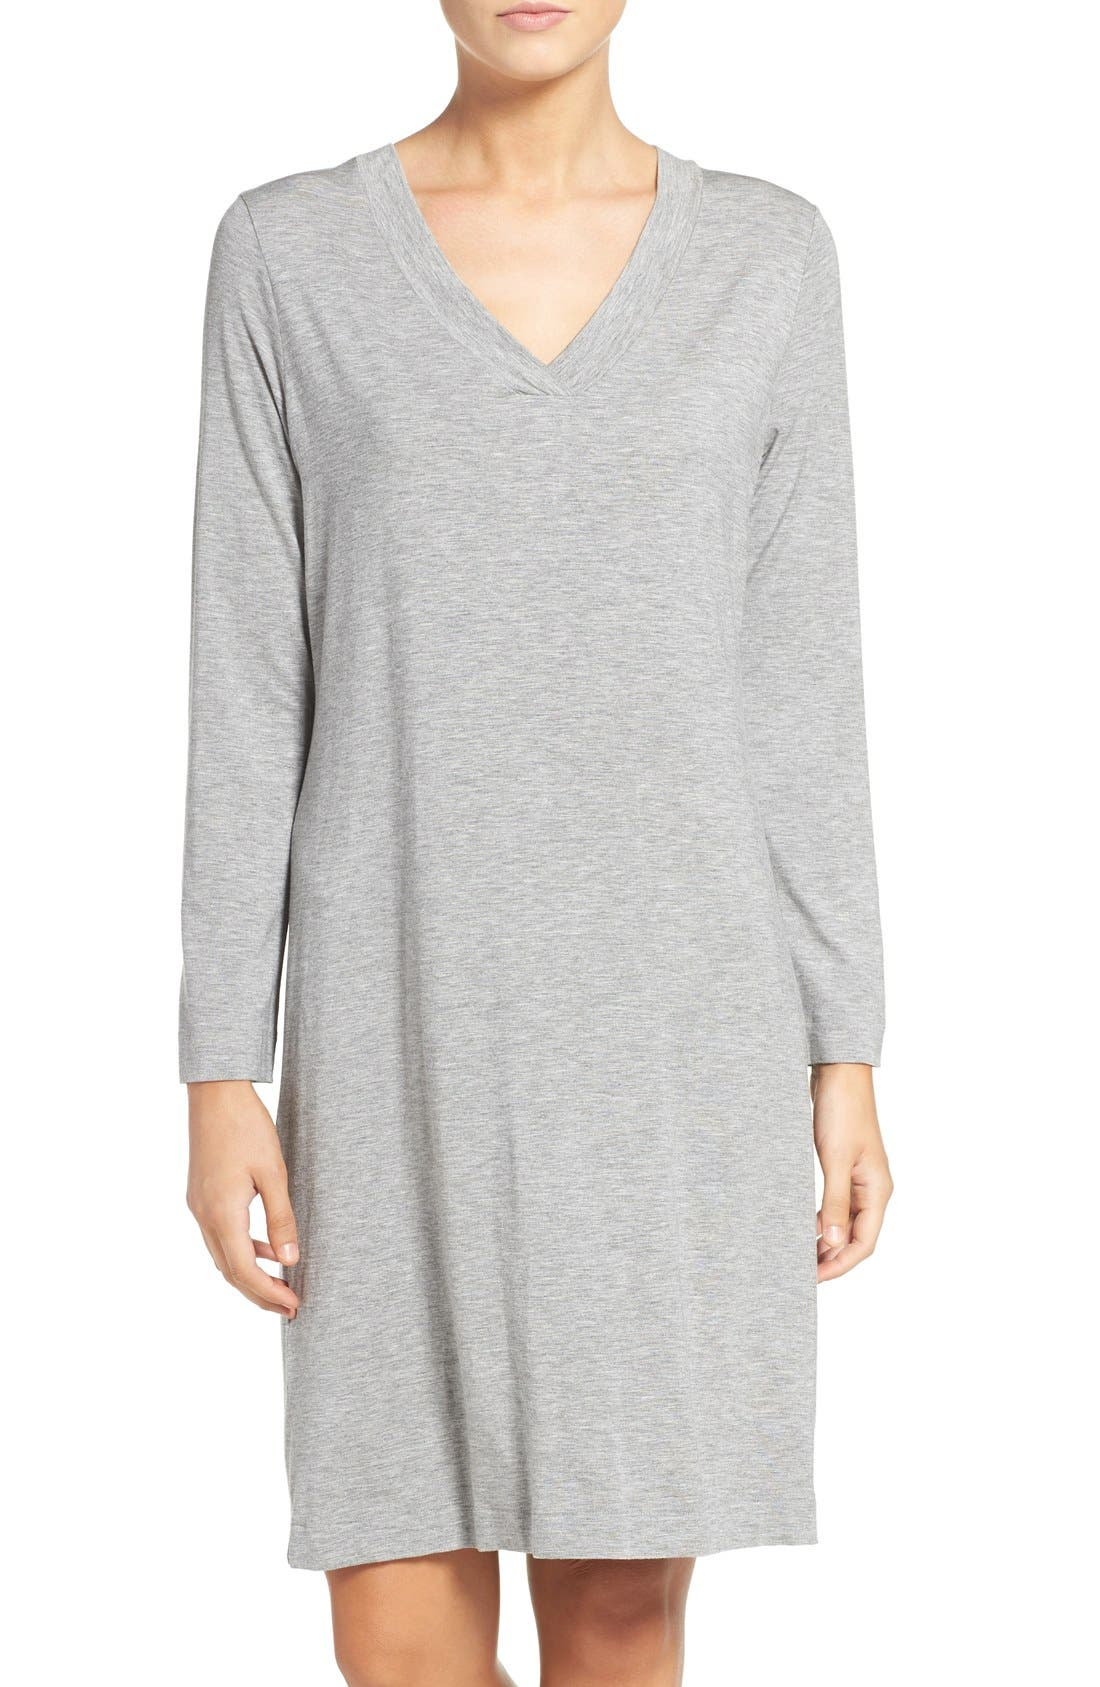 Alternate Image 1 Selected - Hanro Long Sleeve Knit Nightgown